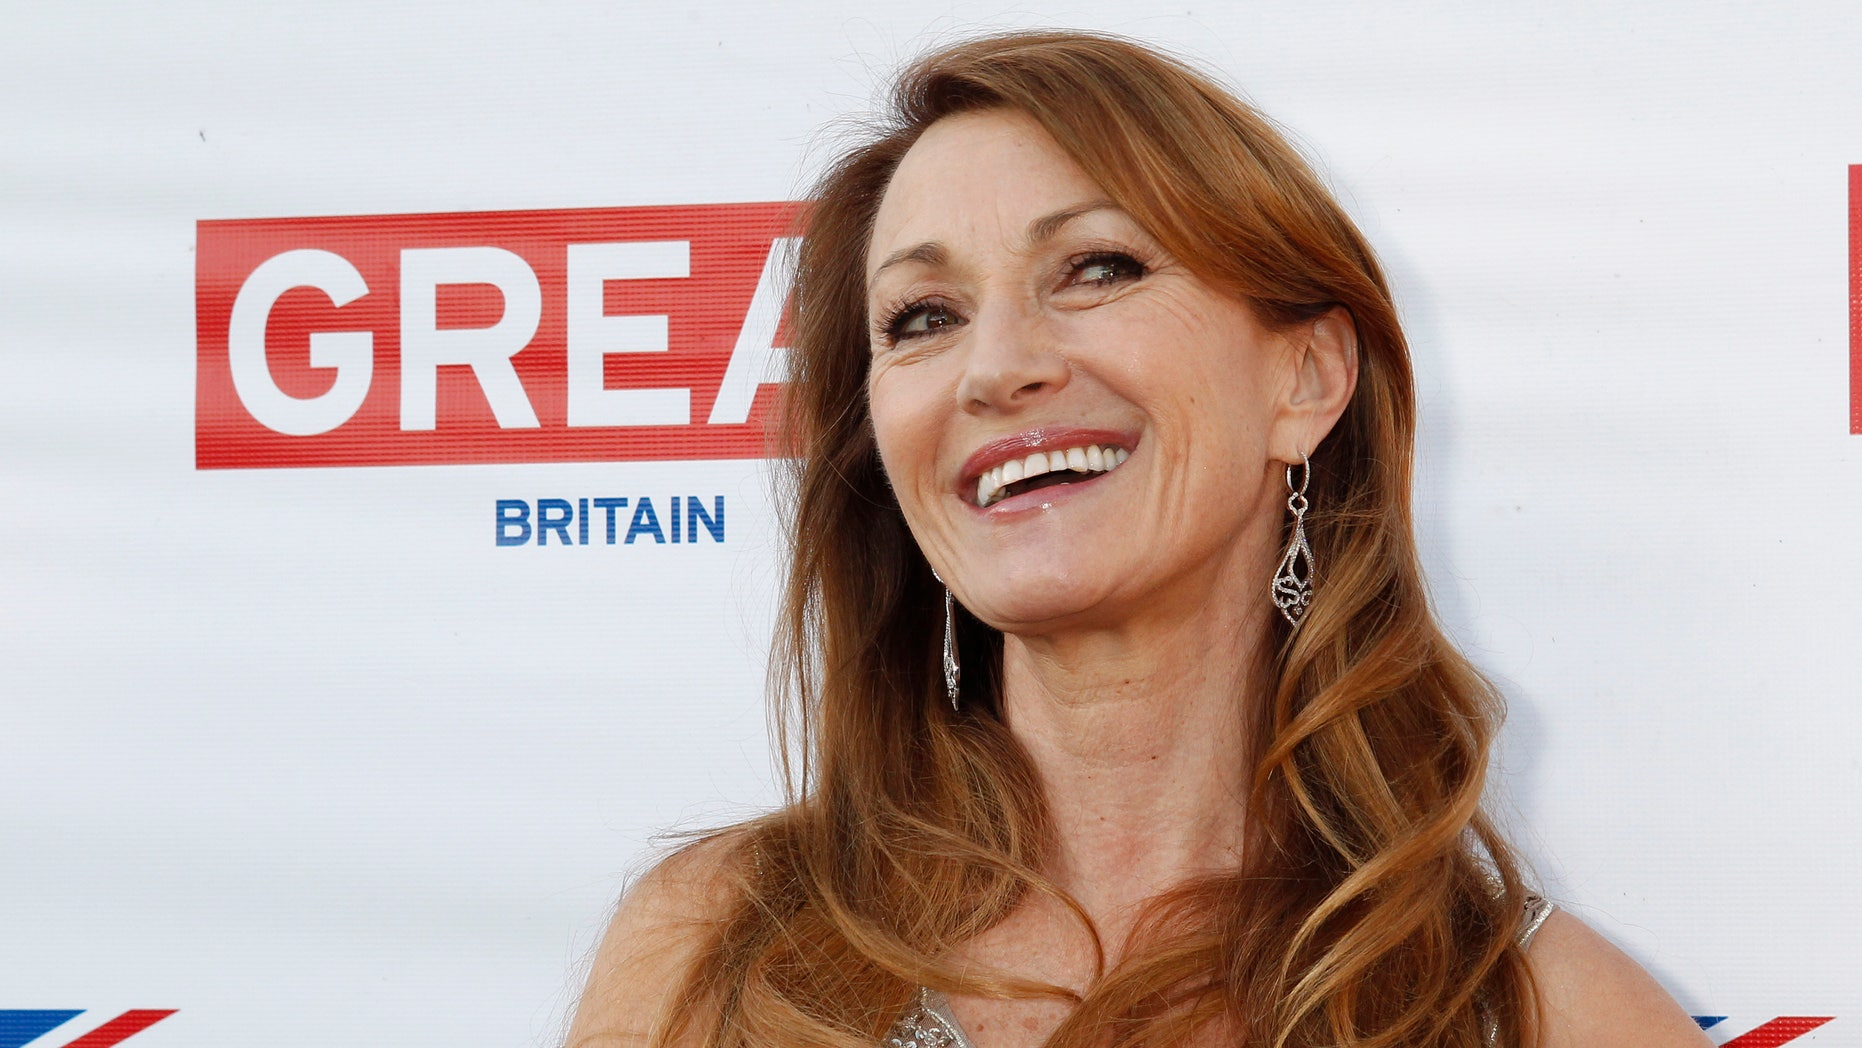 February 22, 2013. Jane Seymour arrives at the Great British Film Reception to honor the British Oscar nominees at the residence of the British Consul-General in Los Angeles.